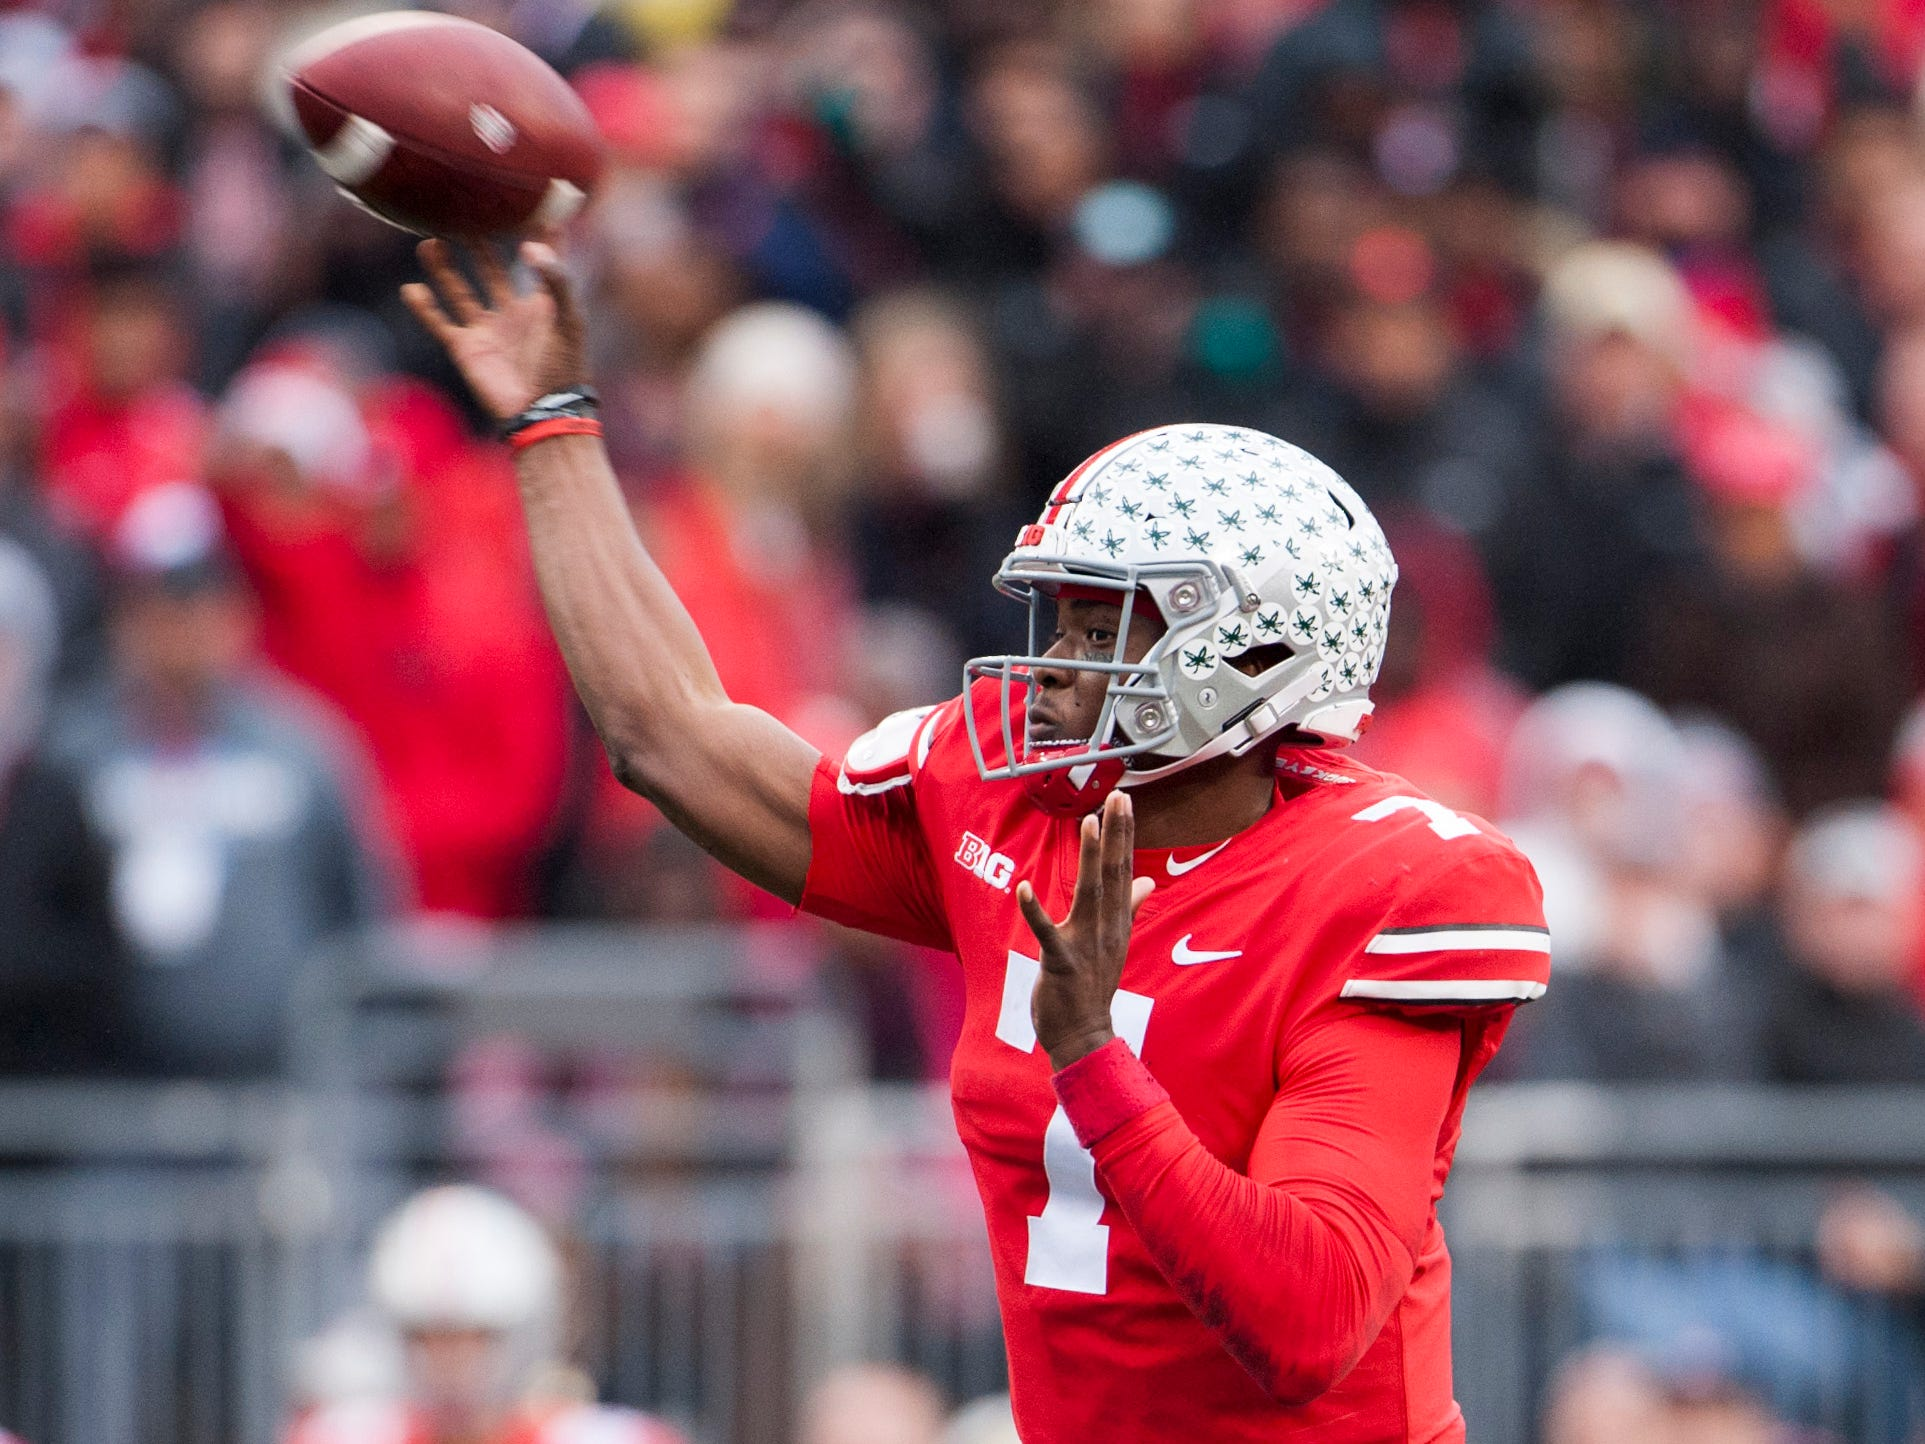 6. New York Giants — Dwayne Haskins, QB, Ohio State: The Giants made a bold move last season, passing over a quarterback at the top of the draft to take Saquon Barkley. They can't skip getting Eli Manning's replacement a second time.